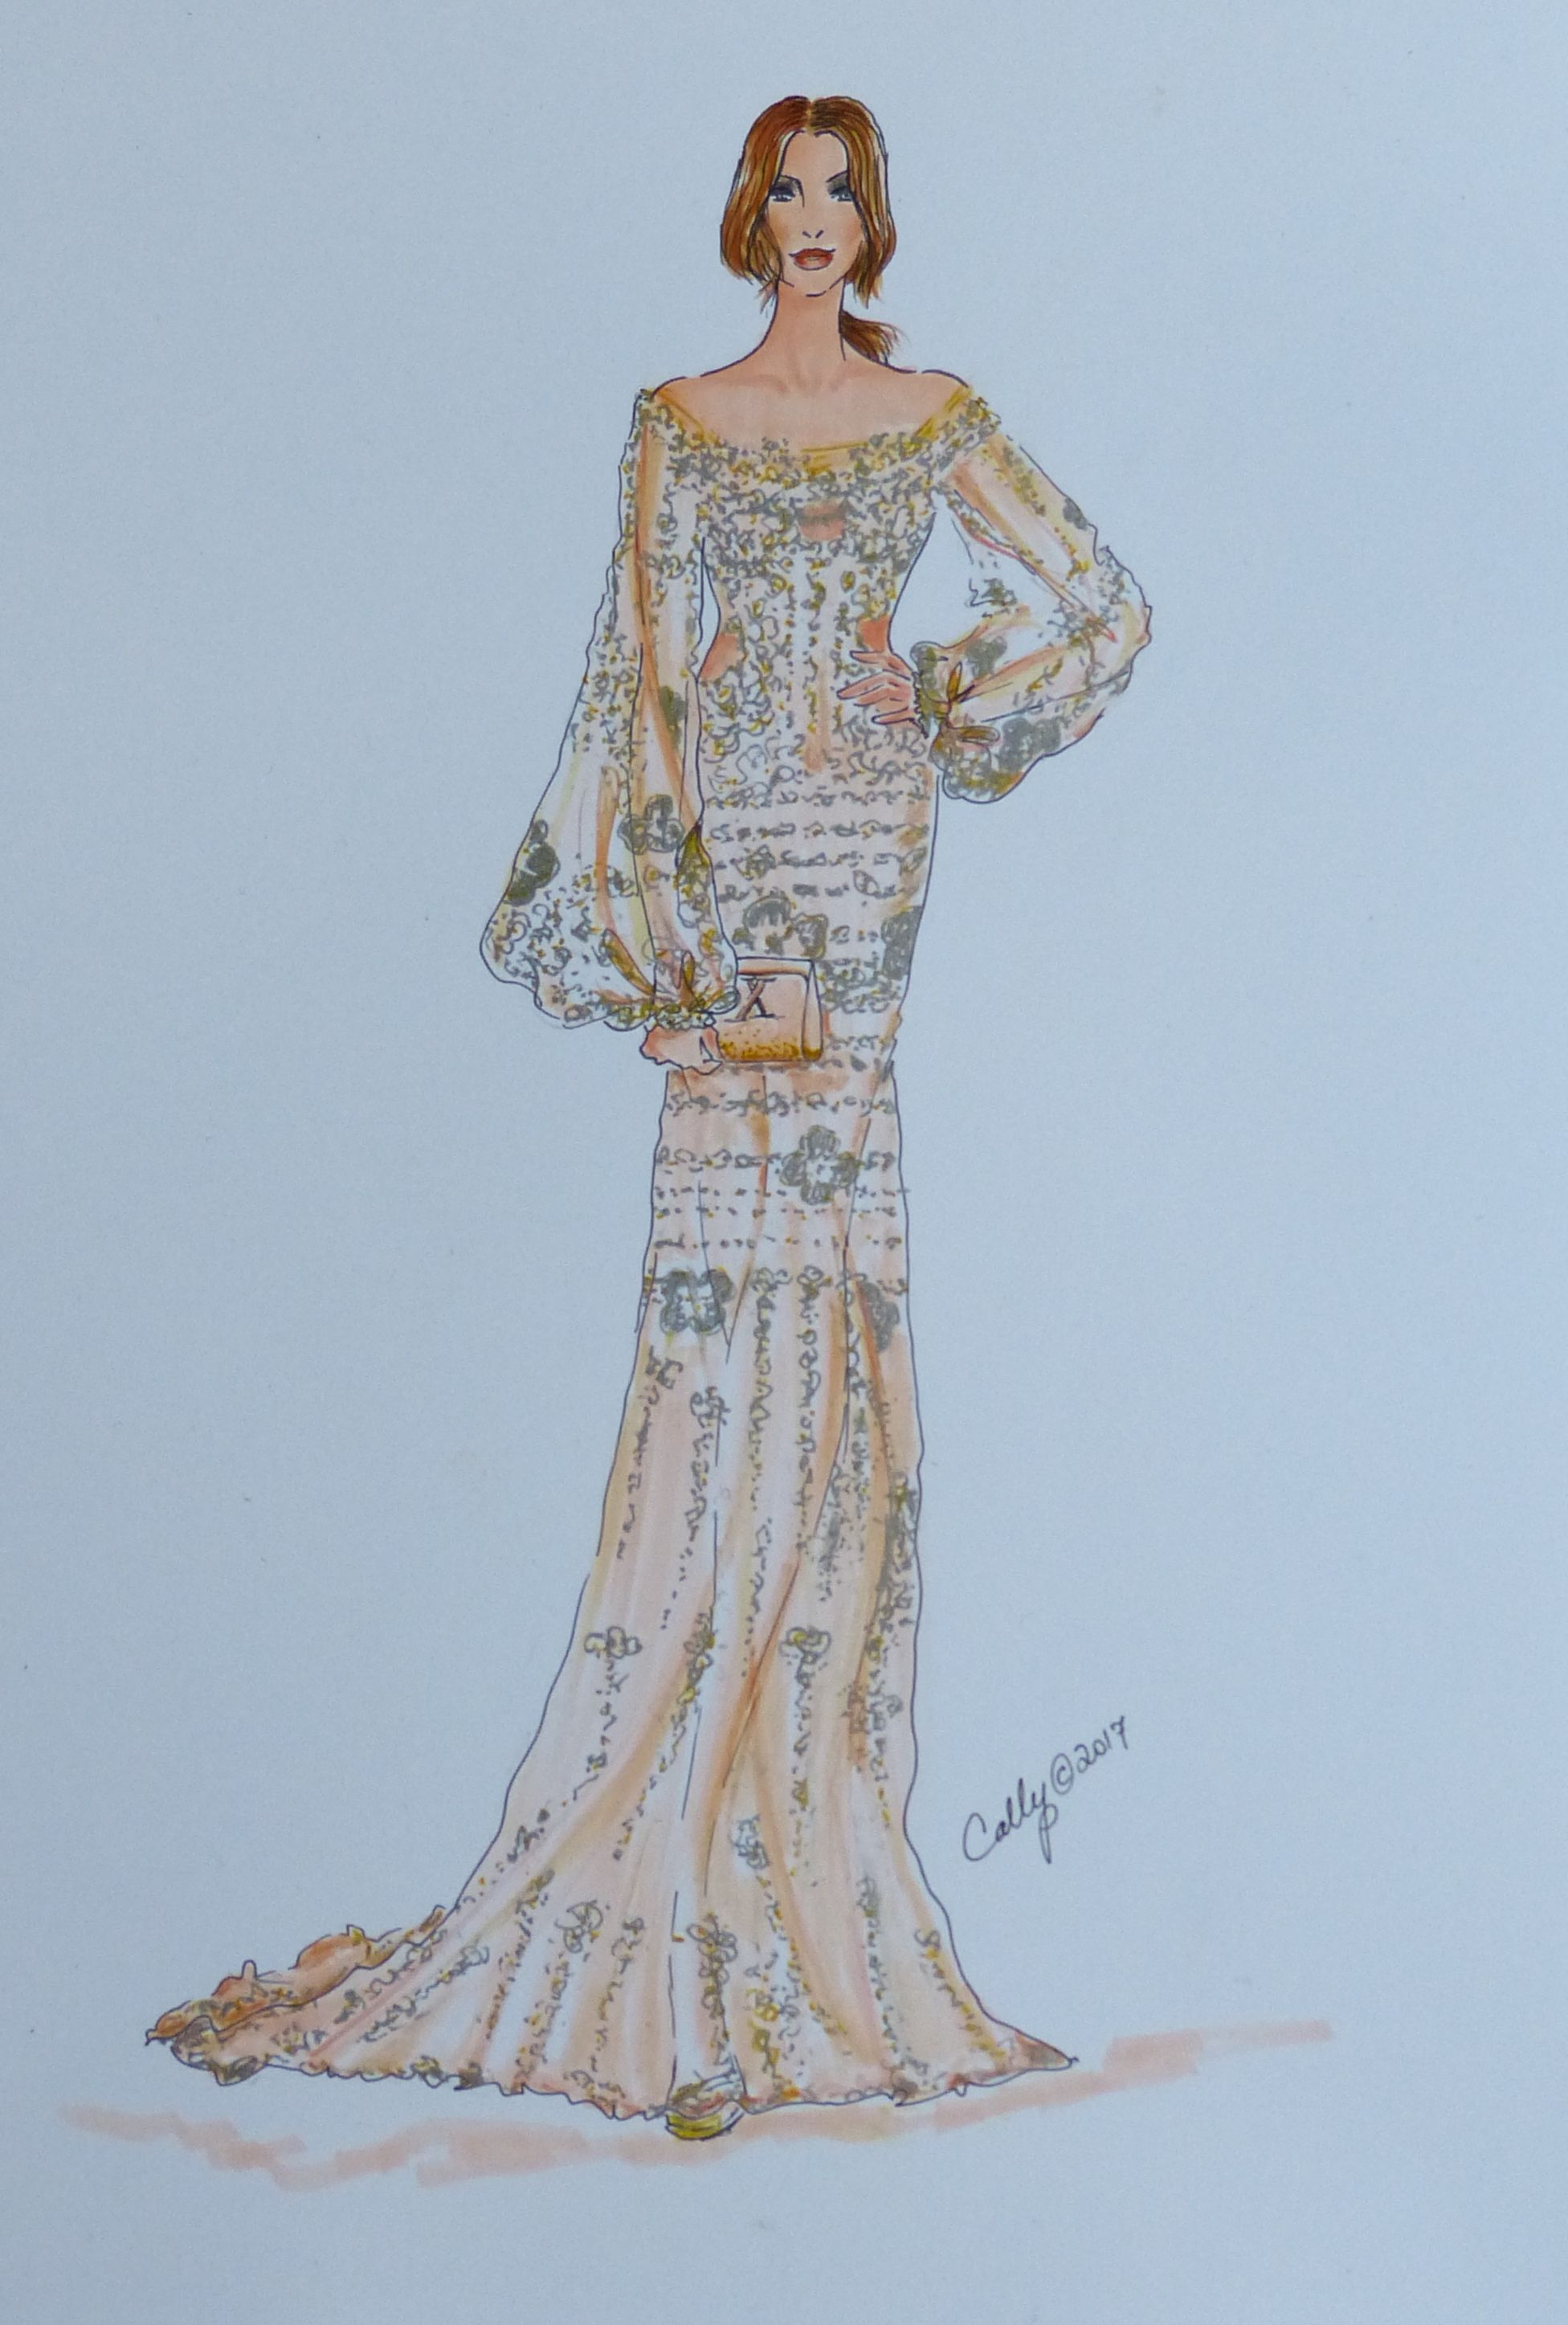 Pin by Penny George on Fashion Illustrations